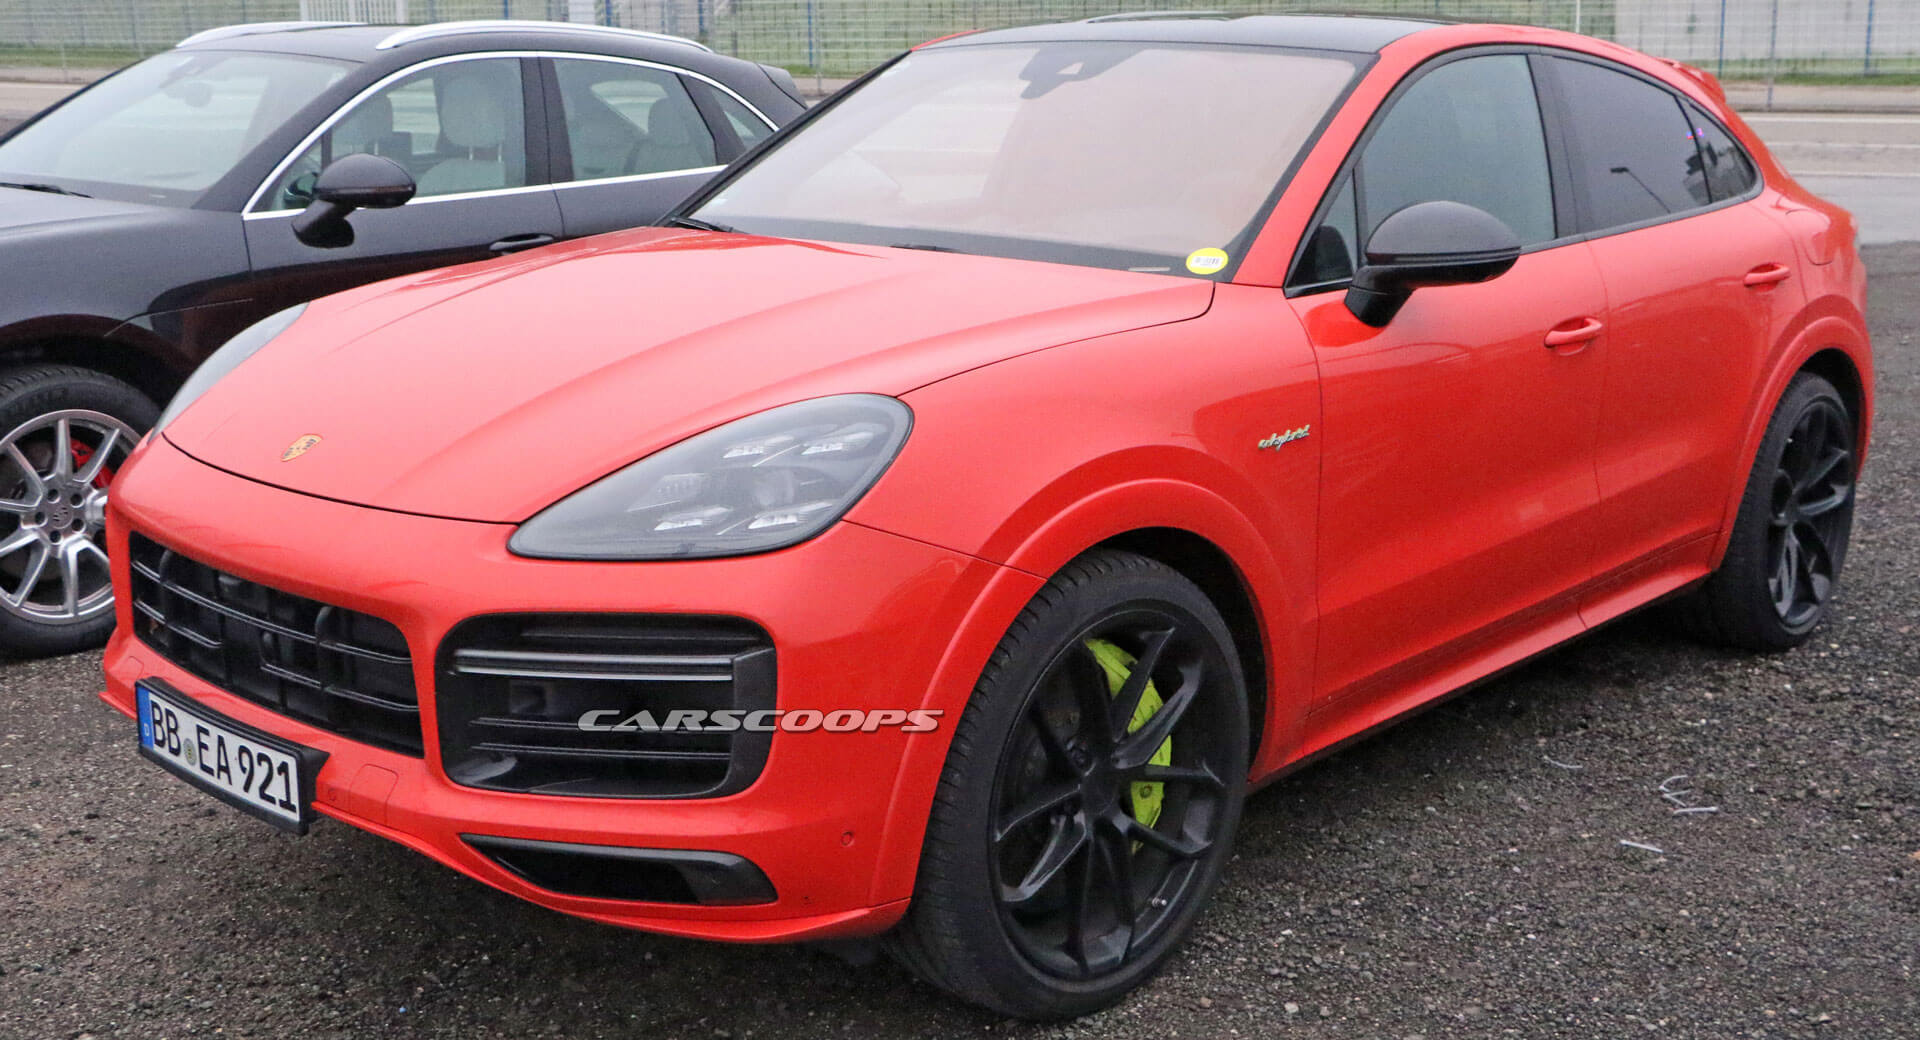 Is Porsche Testing An 800 Hp Variant Of Its Cayenne Turbo S E Hybrid Coupe Carscoops